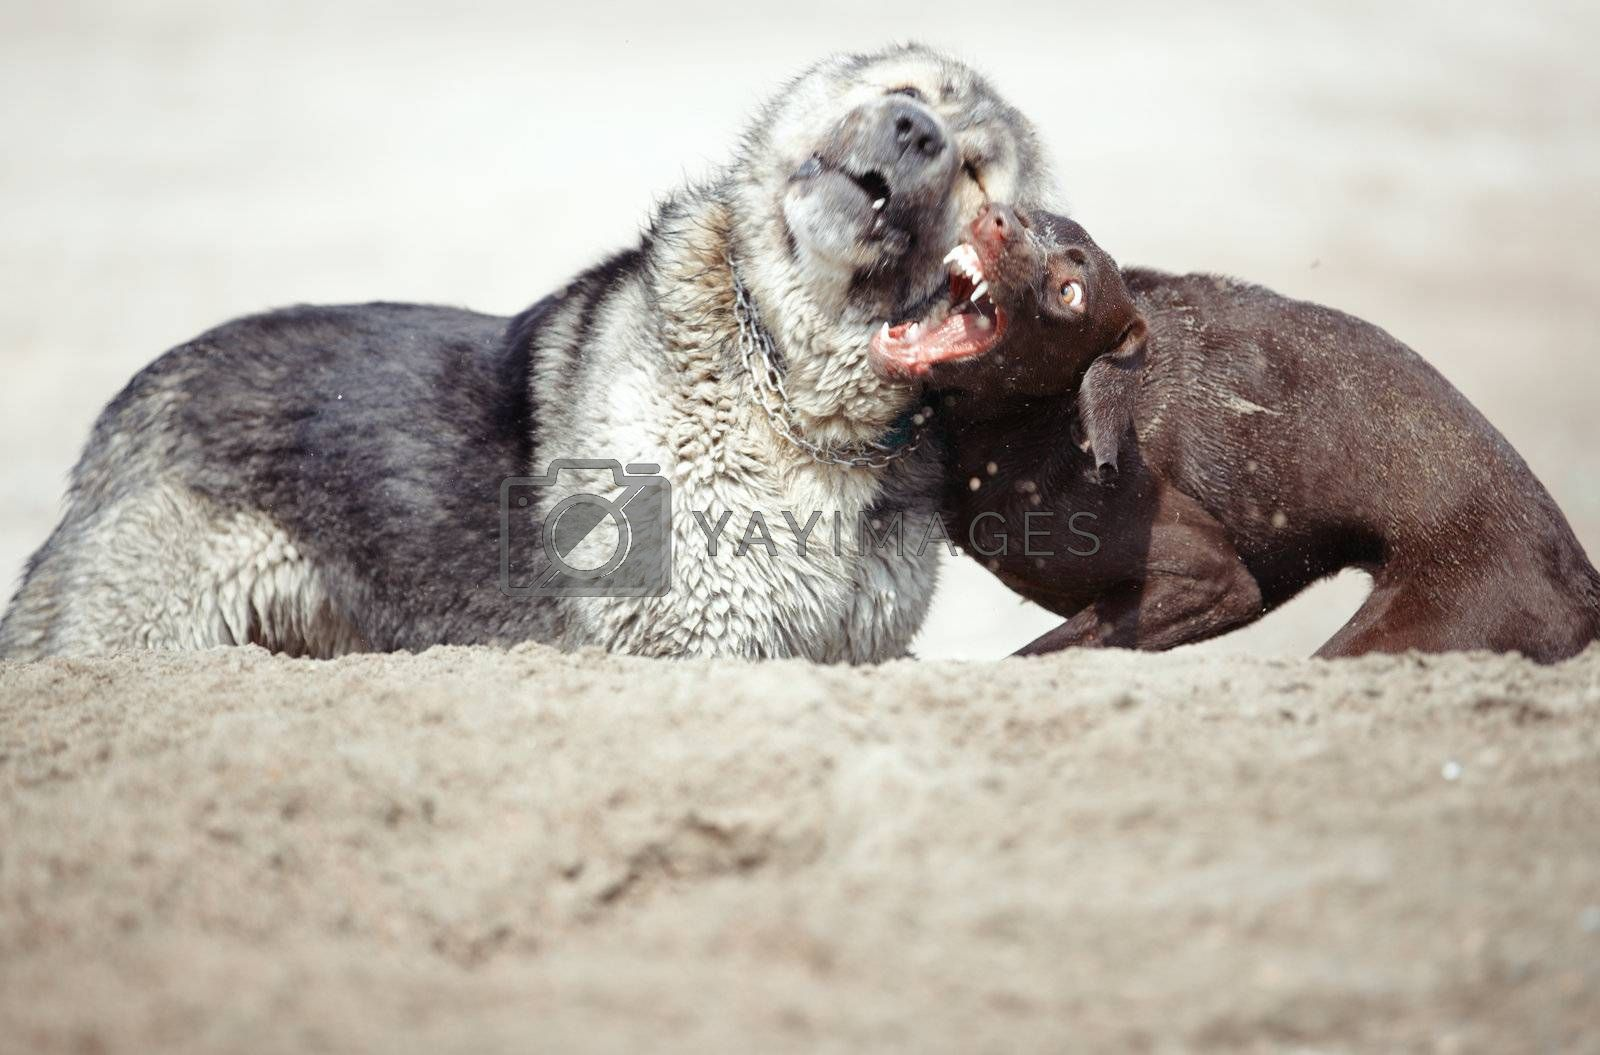 Two dogs fighting outdoors. Horizontal photo with natural light. Shallow depth of field added for natural look